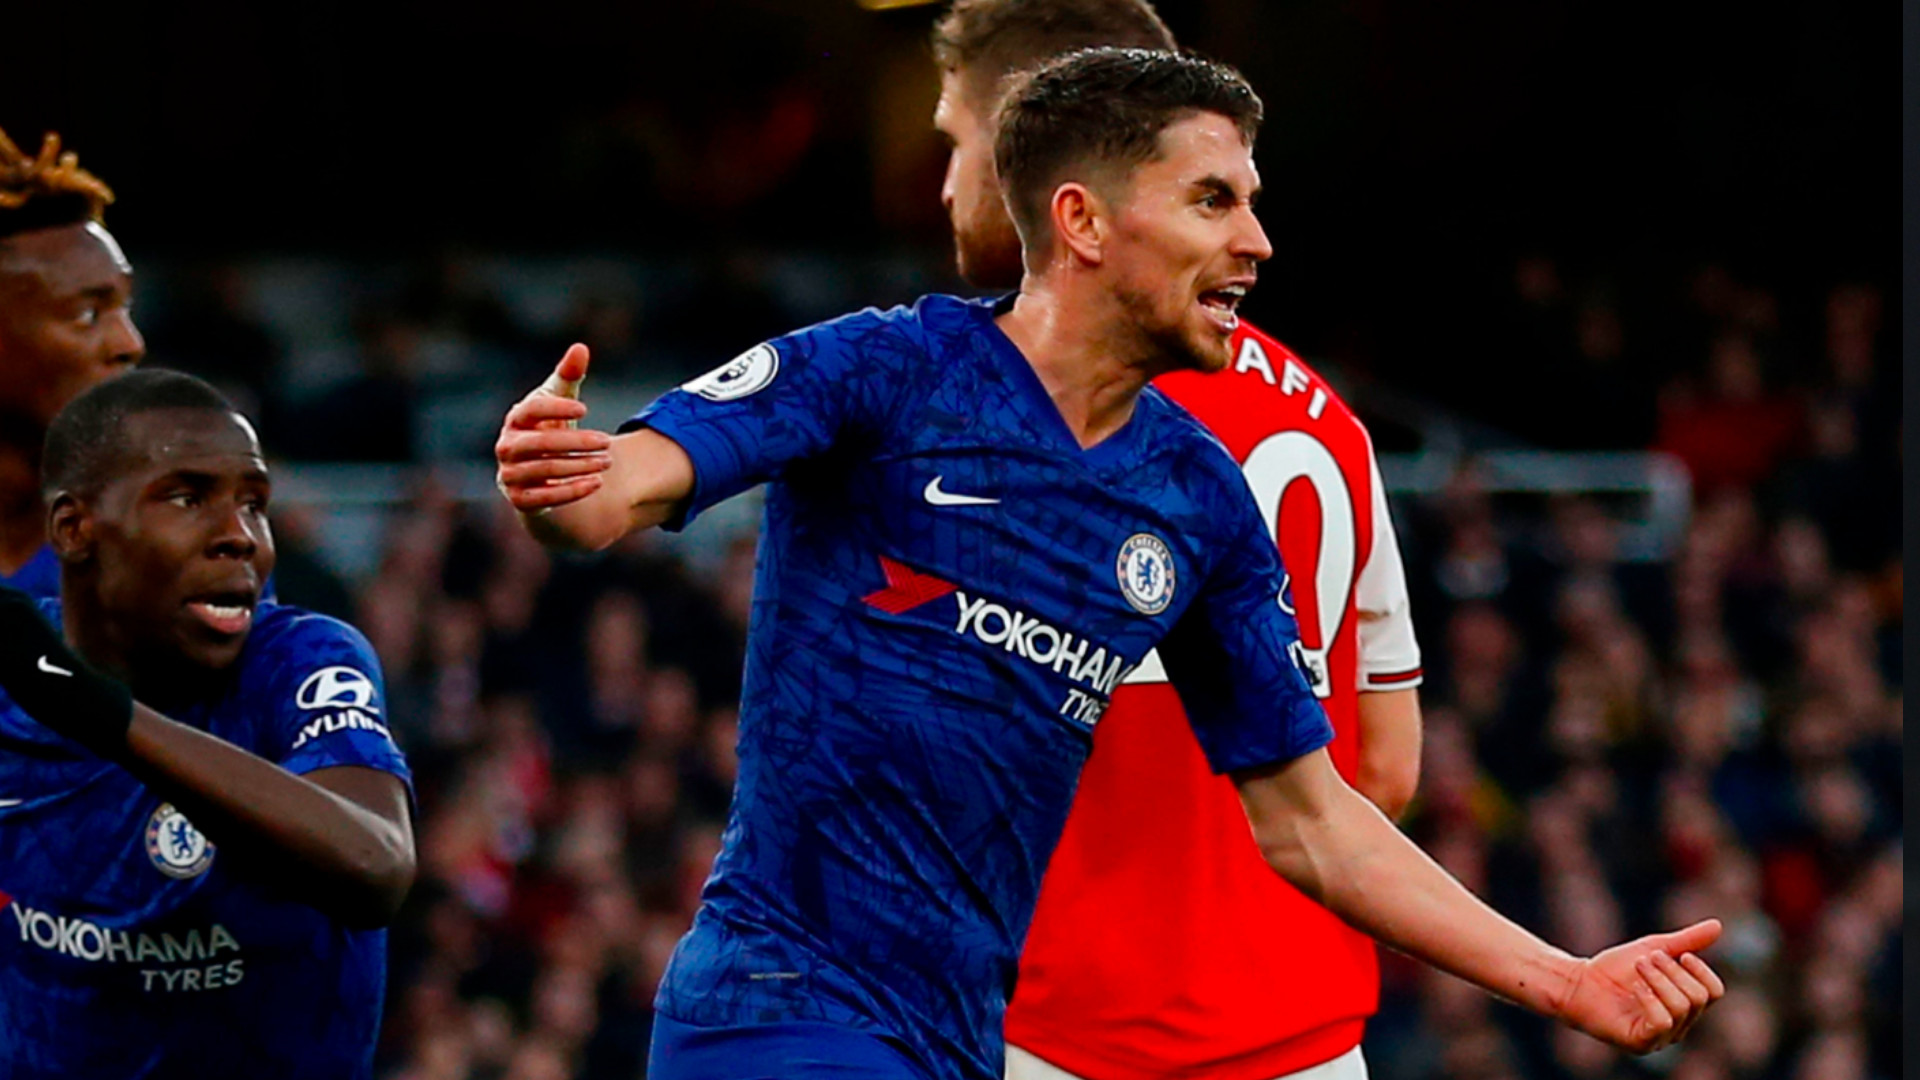 Chelsea rode their luck against Arsenal admits Frank Lampard